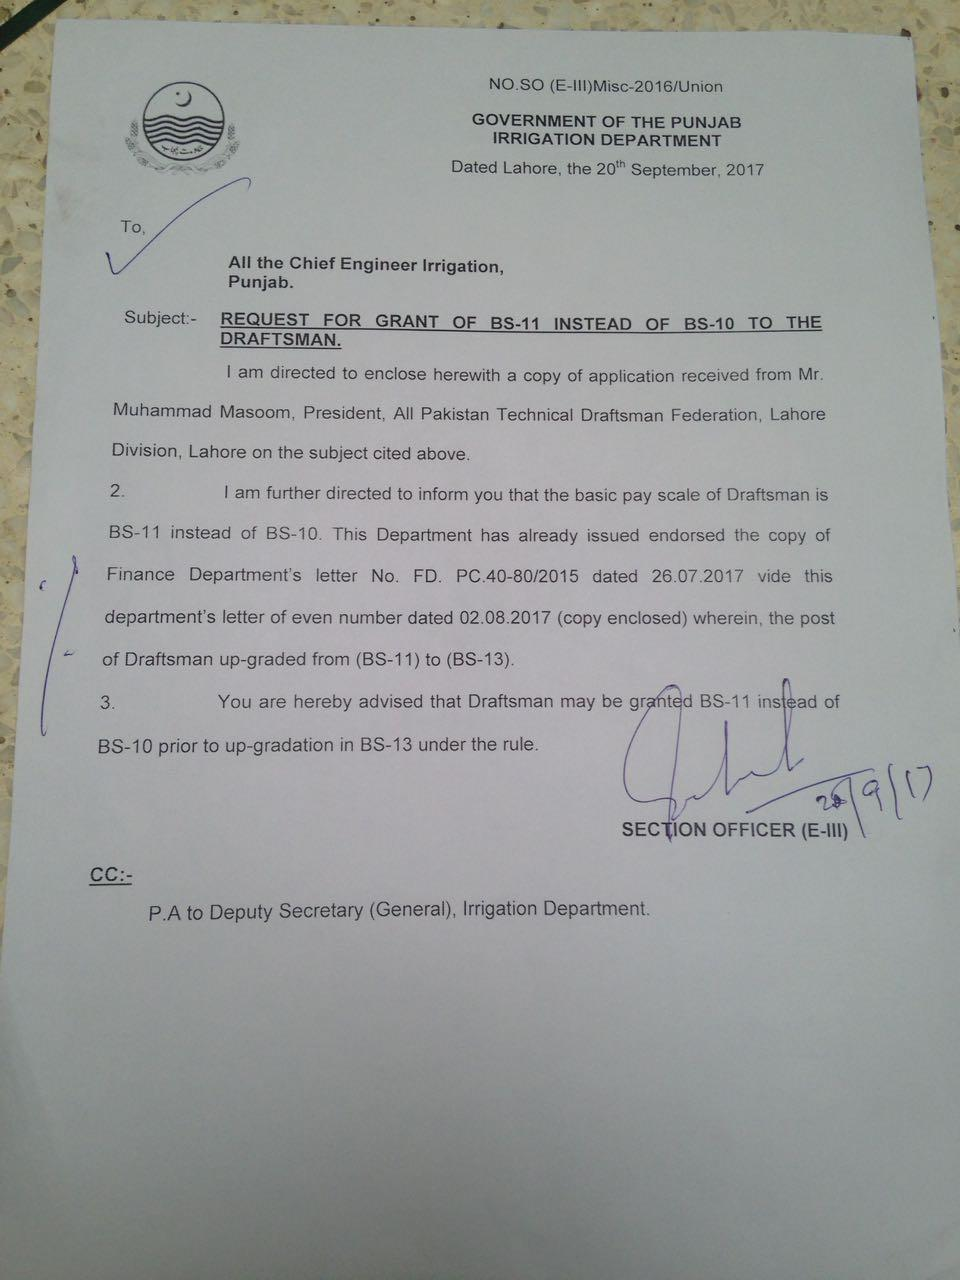 Request for Upgradation Draftsman from BPS-10 to BPS-11